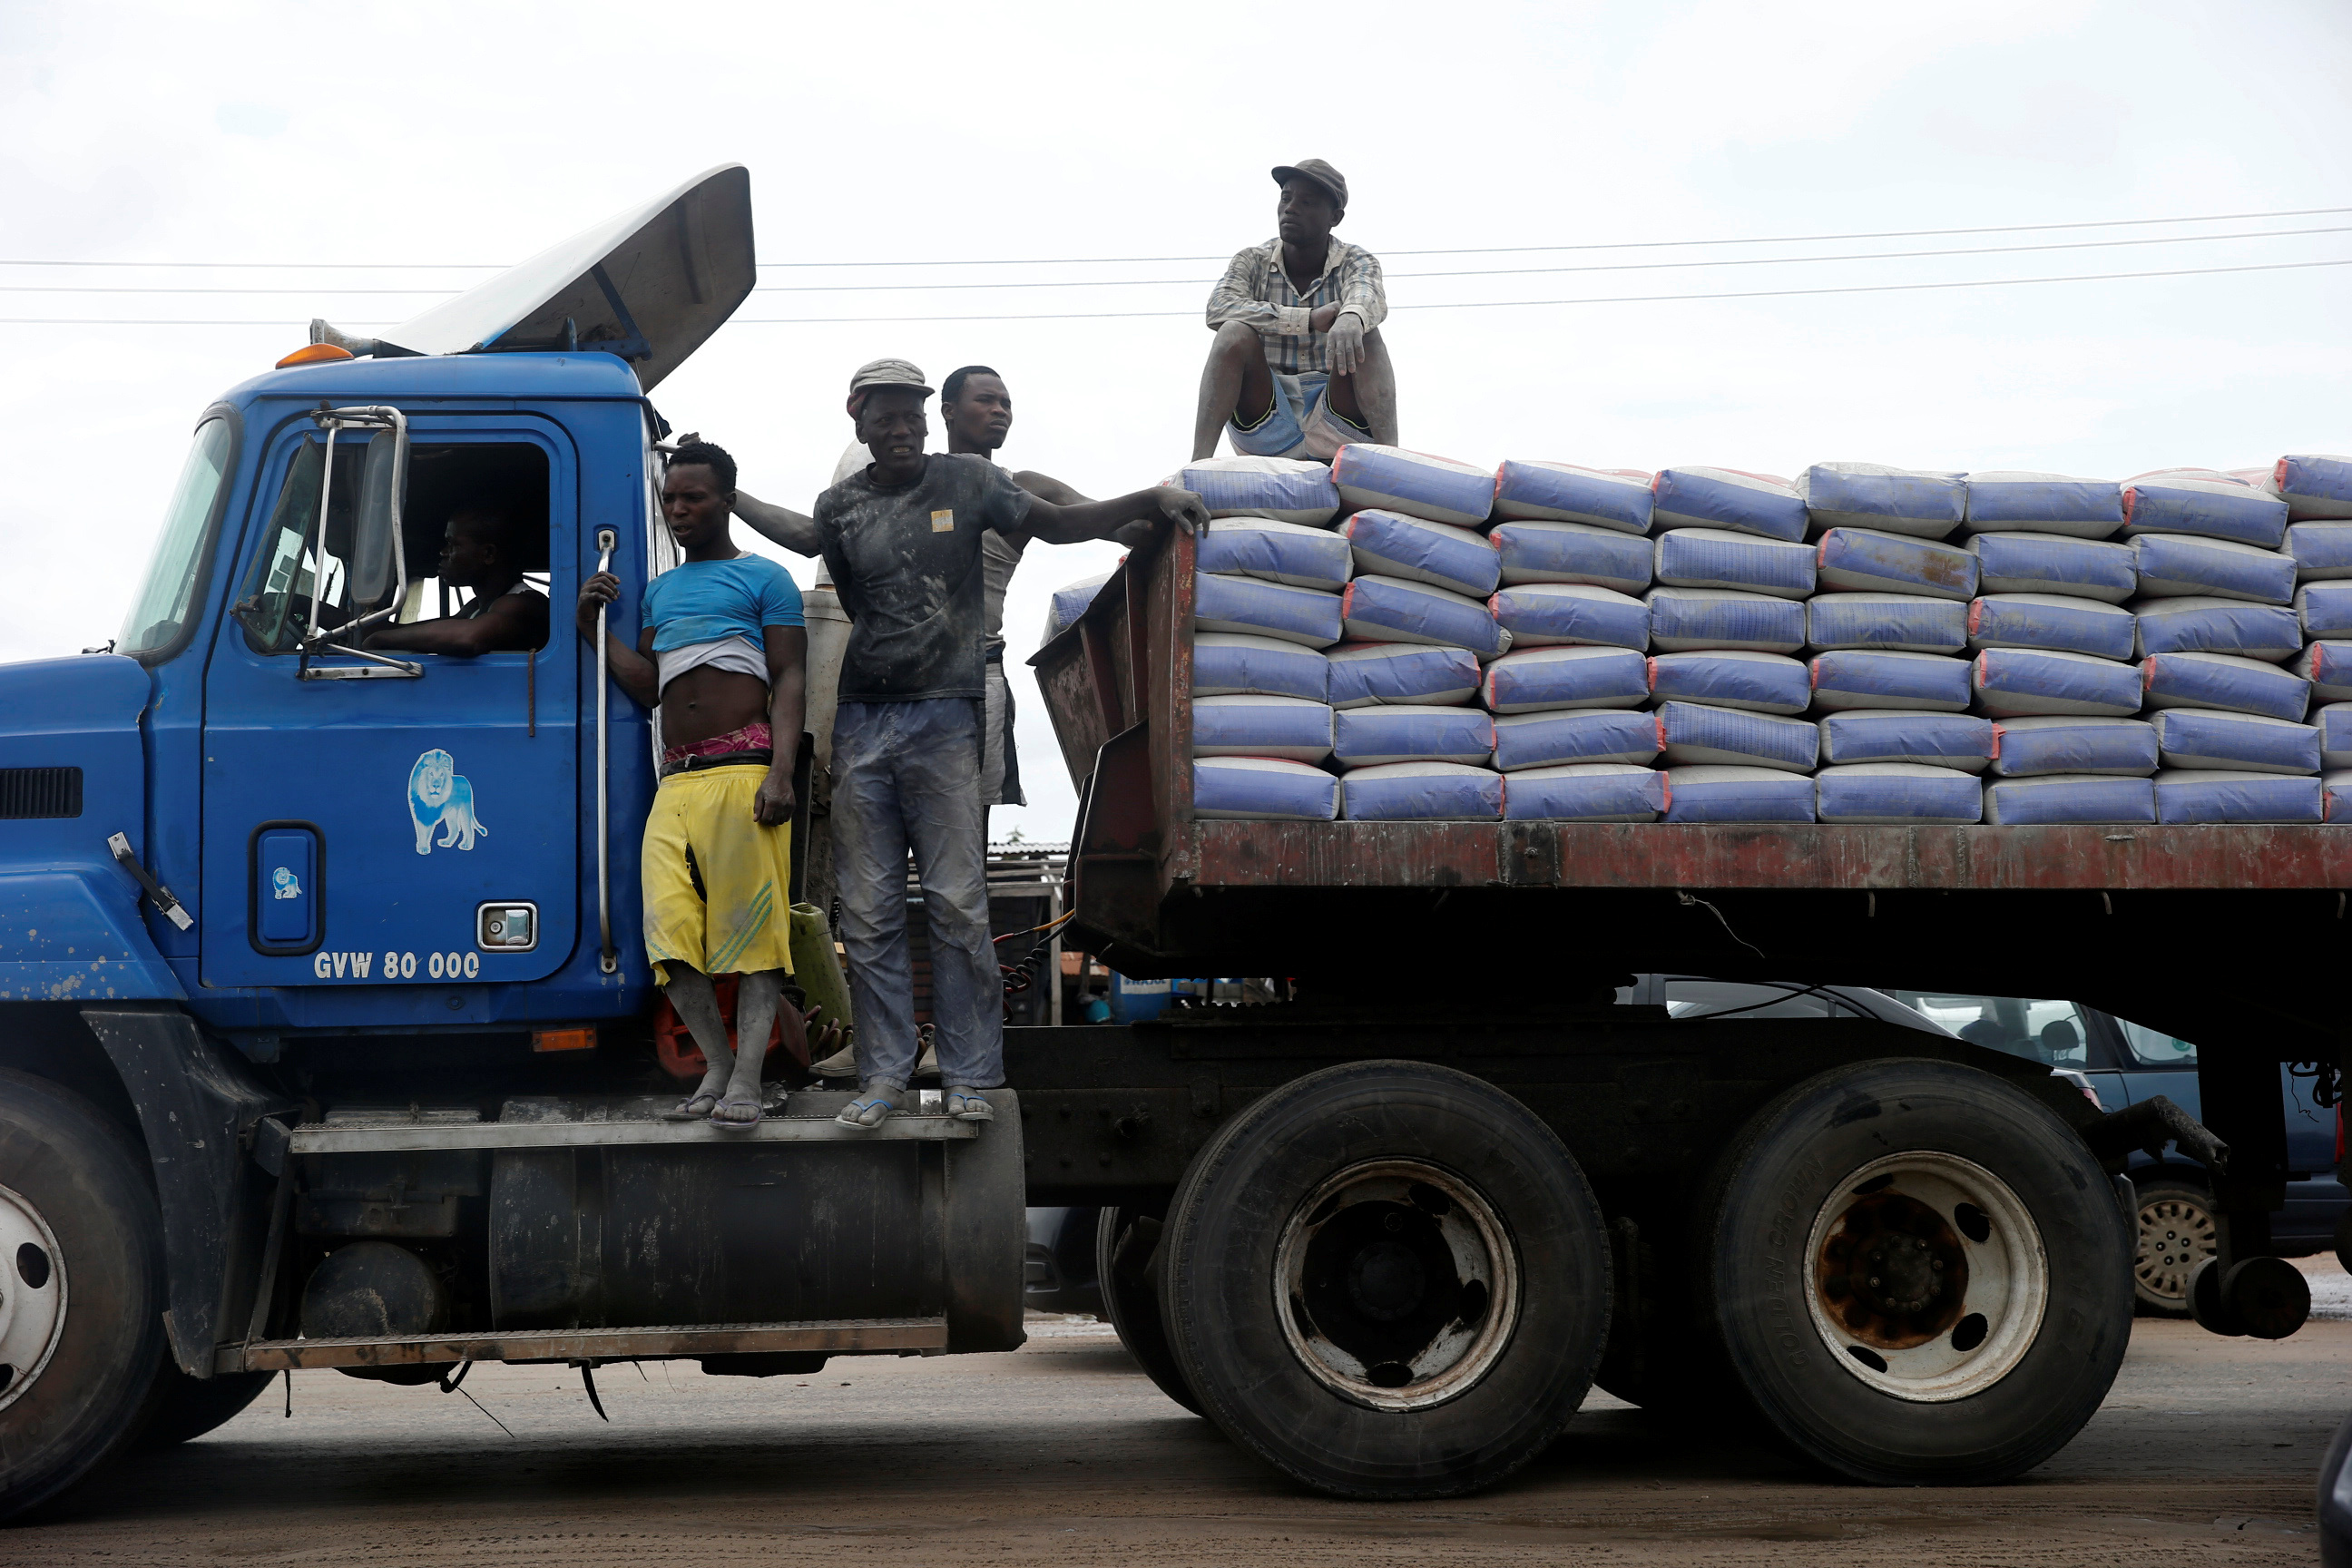 Labourers stand on top of a trailer transporting cement along Ajah-Lagos expressway in Nigeria's commercial capital Lagos, Nigeria June 3, 2017. REUTERS/Akintunde Akinleye